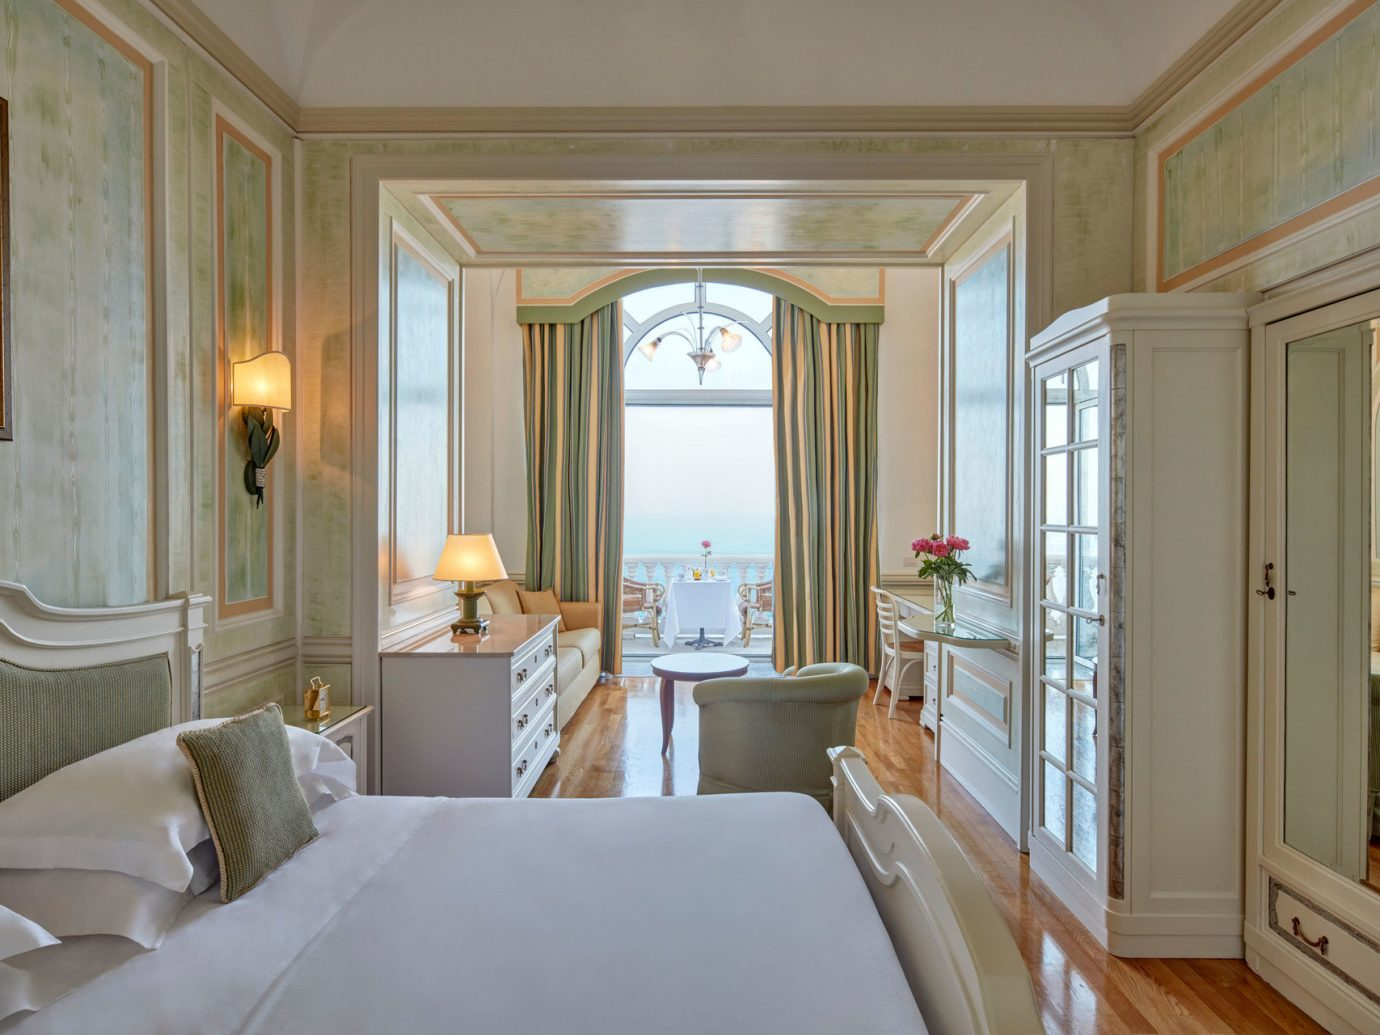 Bedroom at Grand Hotel Excelsior Vittoria, Sorrento